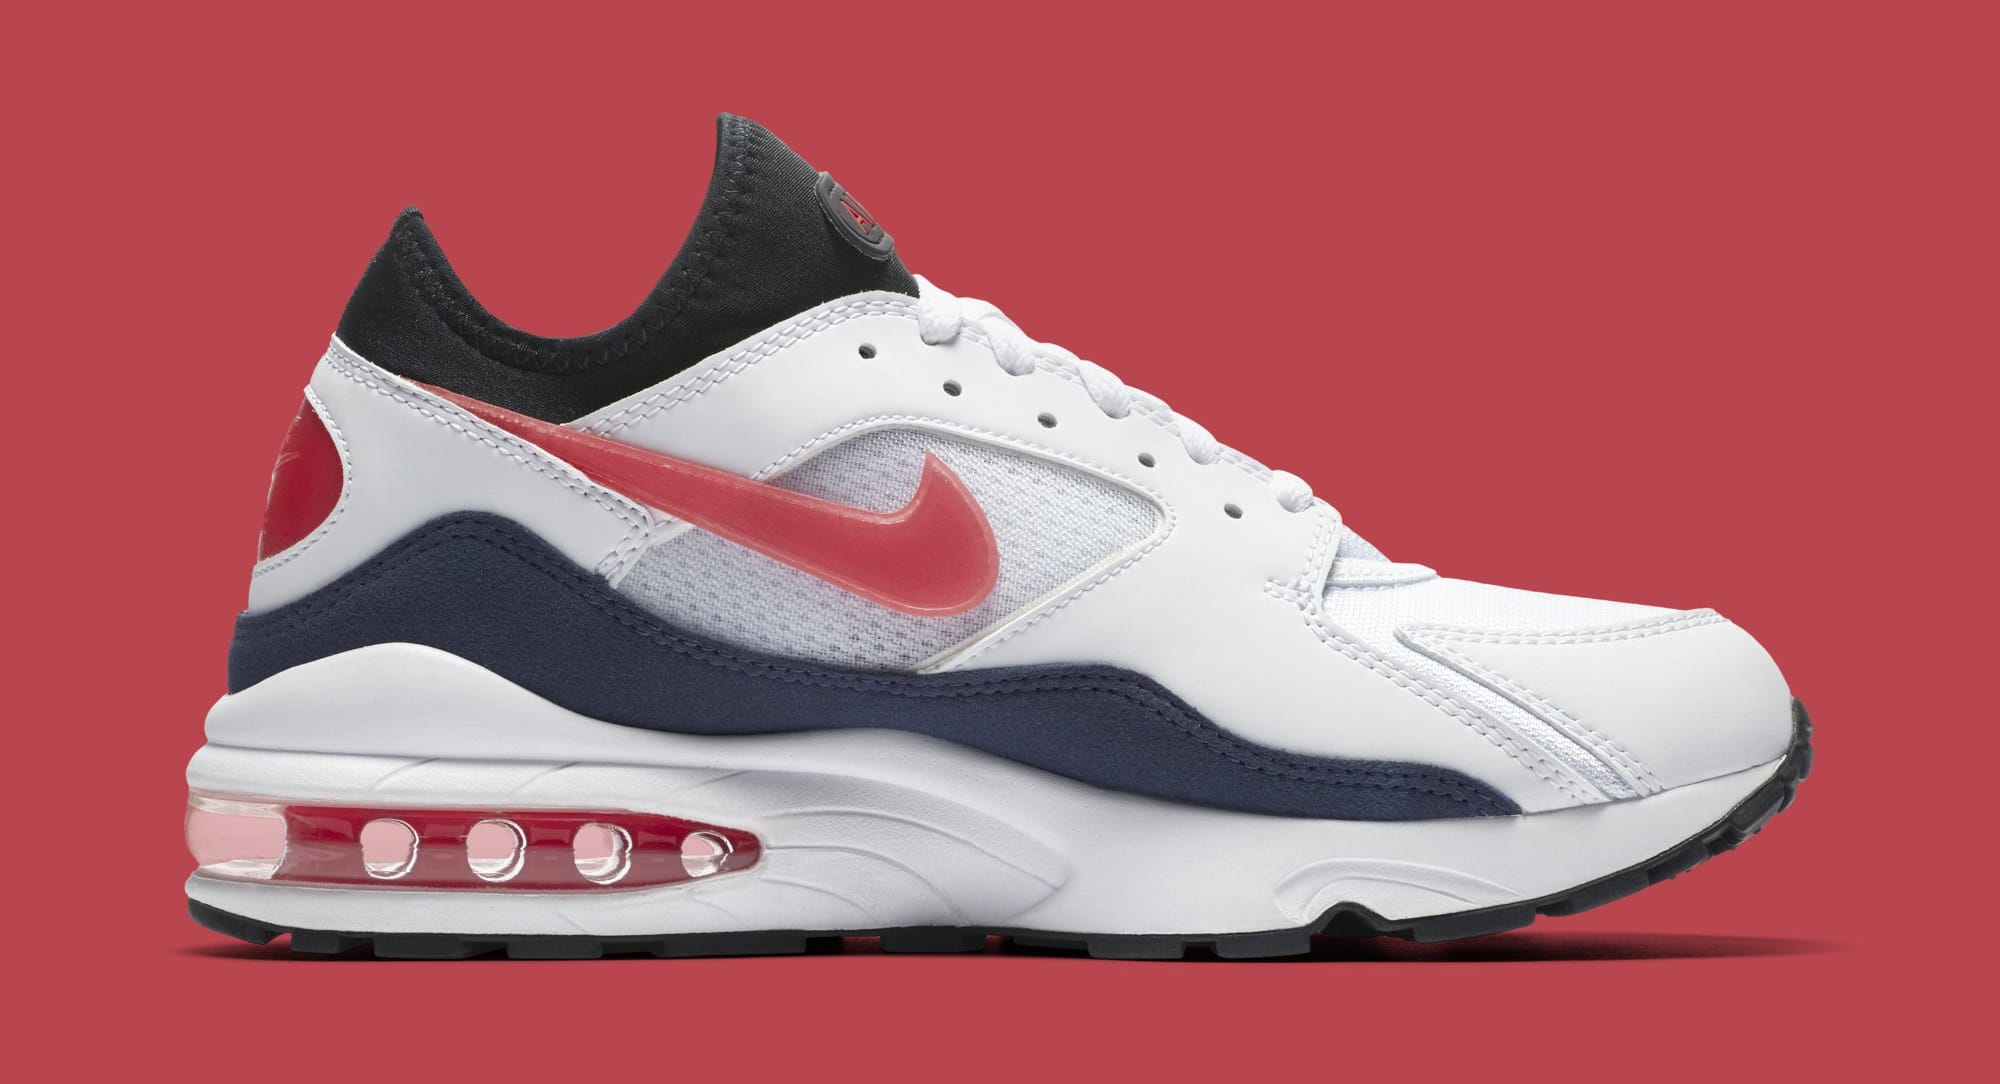 01c12e1f750c96 ... ireland image via nike nike air max 93 flame red 306551 102 medial  6134c ce3c2